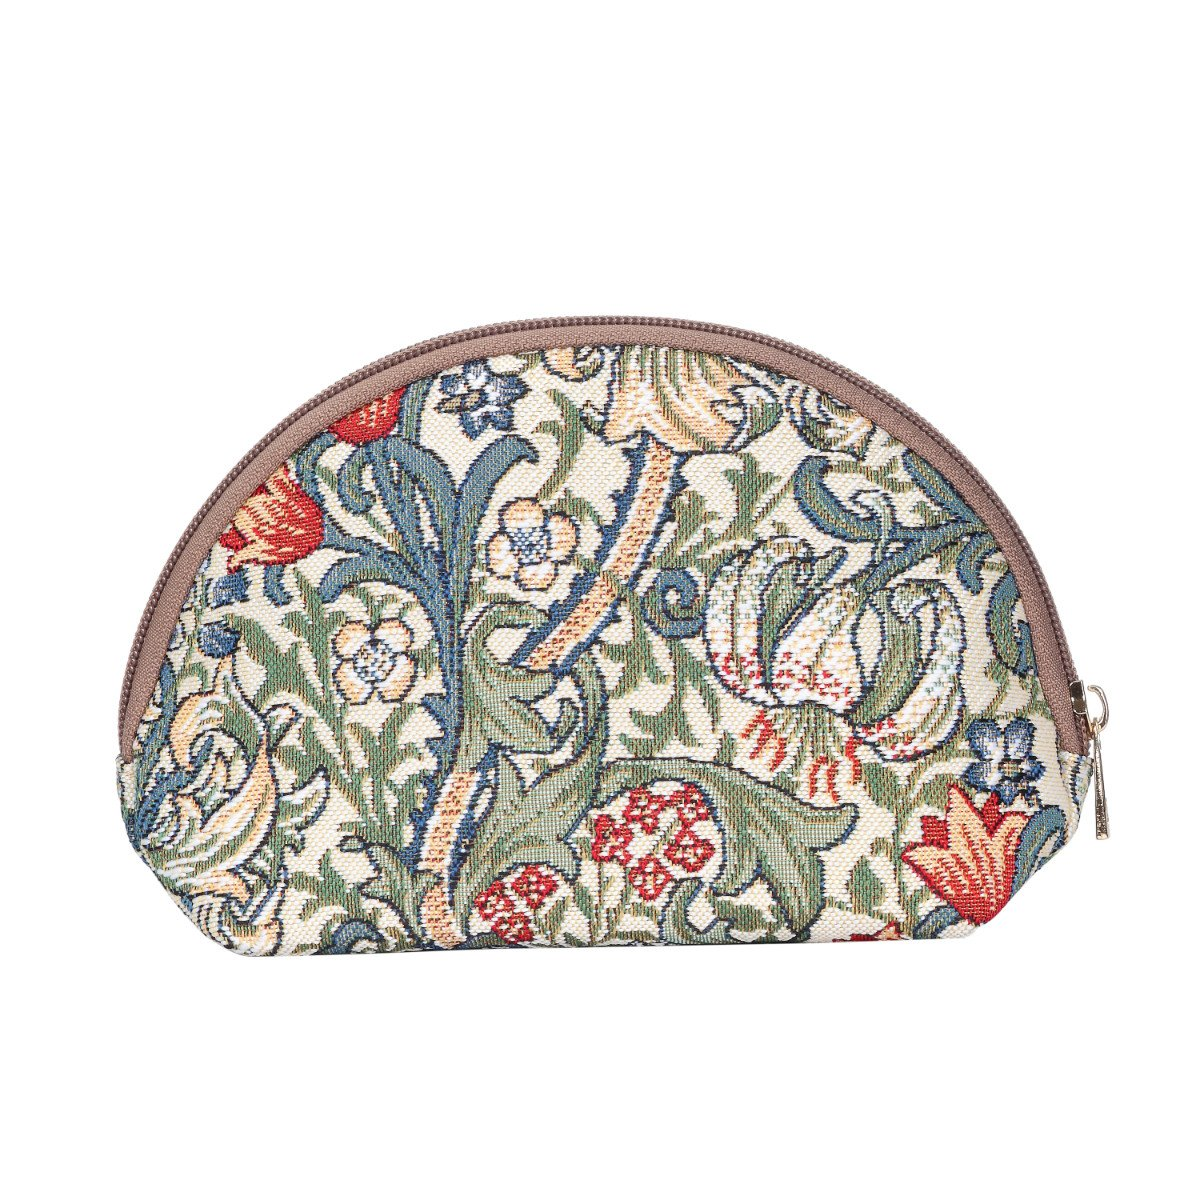 Signare Tapestry Makeup Bag Travel Cosmetic Bag Brush Bag for Women Girls by Designer William Morris Golden Lily (COSM -GLILY)